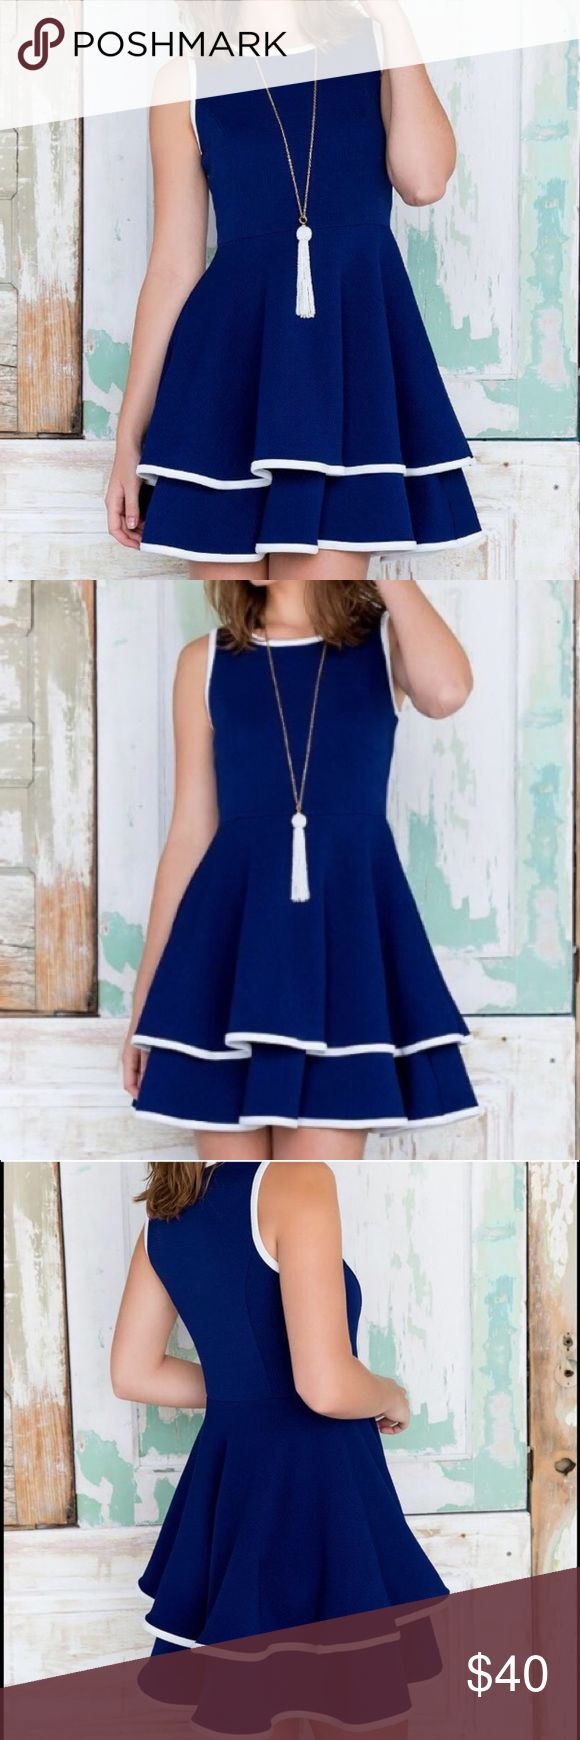 Francesca's Navy Skater Dress NWT Francesca's navy blue double layer skater dress with white trim made of a thick textured material. Francesca's Collections Dresses